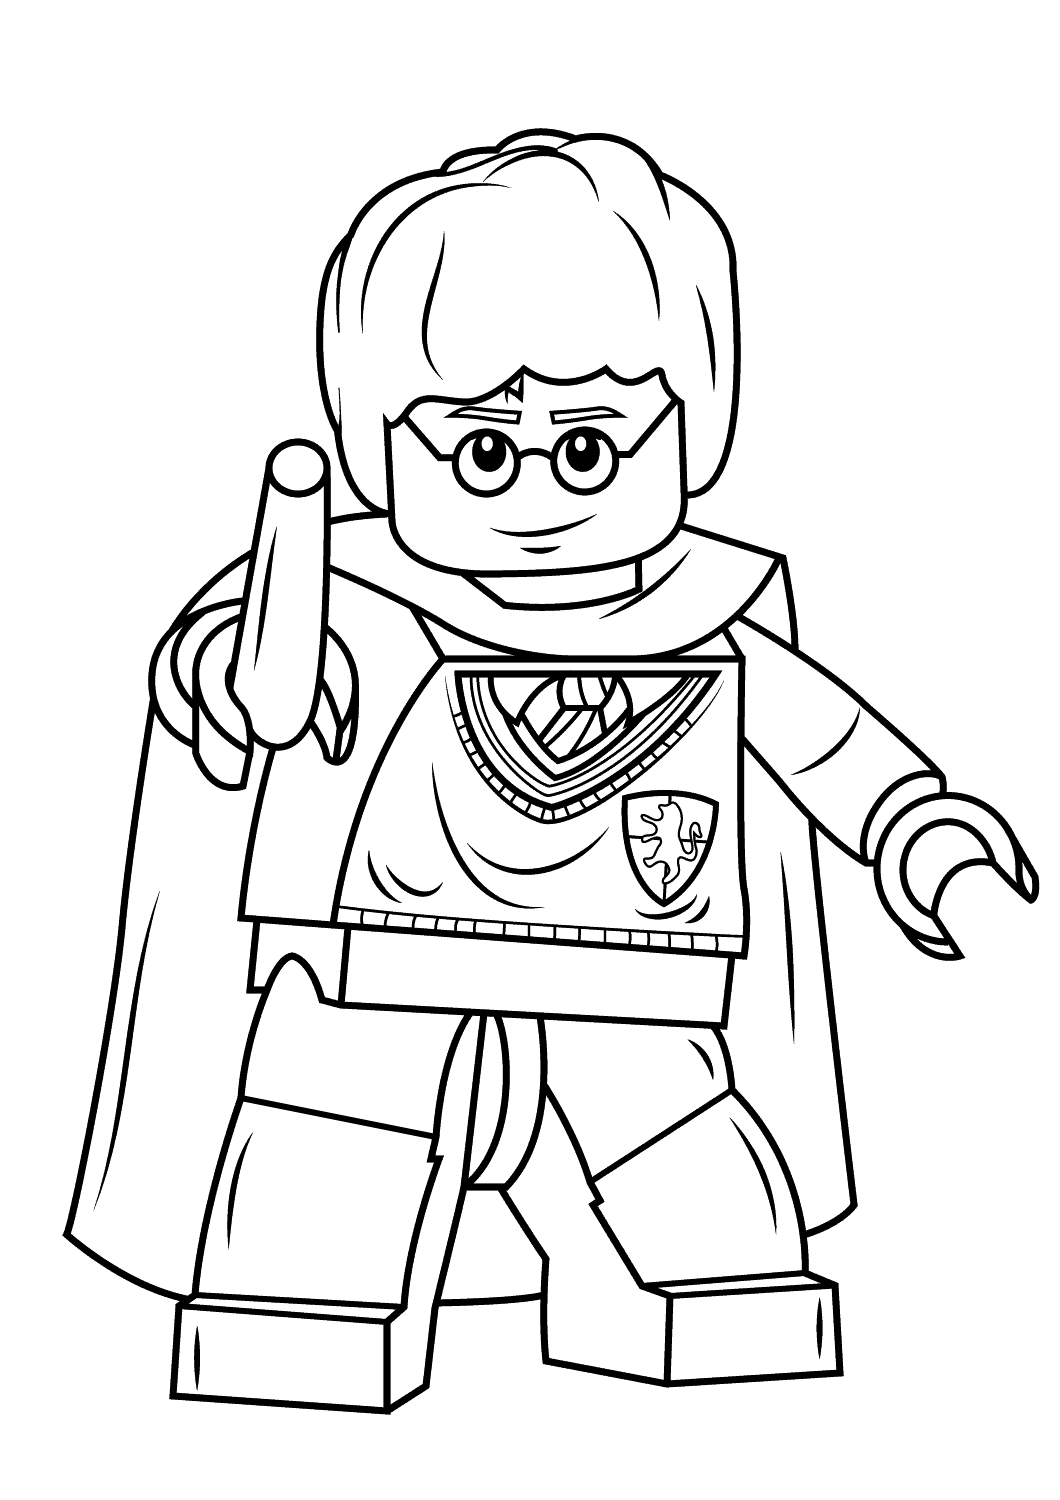 Coloriage Lego Harry Potter À Imprimer tout Dessin D Harry Potter